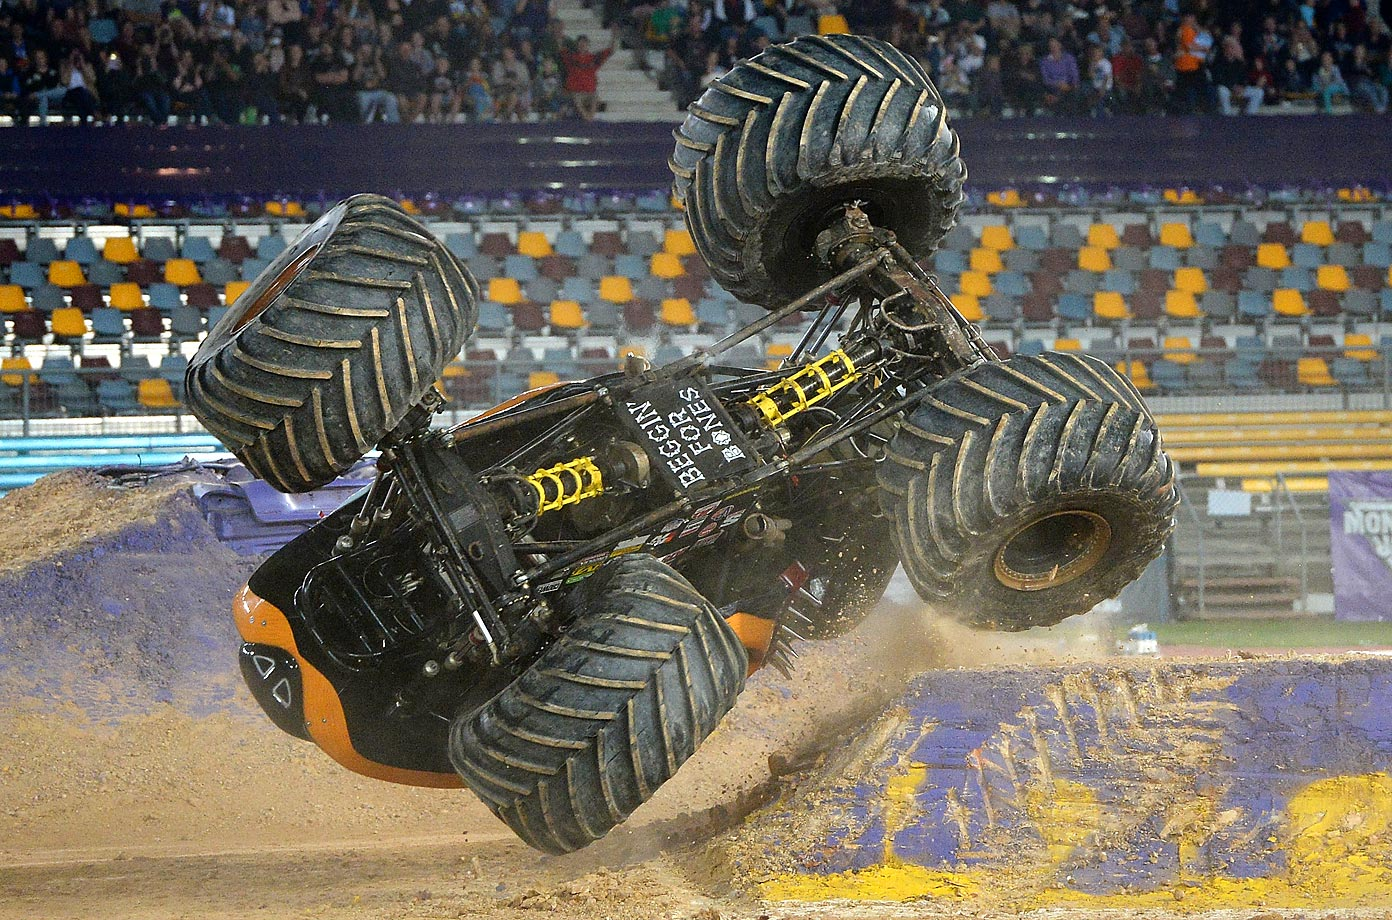 Colt Stephens flips Monster Mutt Rottweiler during the Monster Jam at Queensland Sport and Athletics Centre.